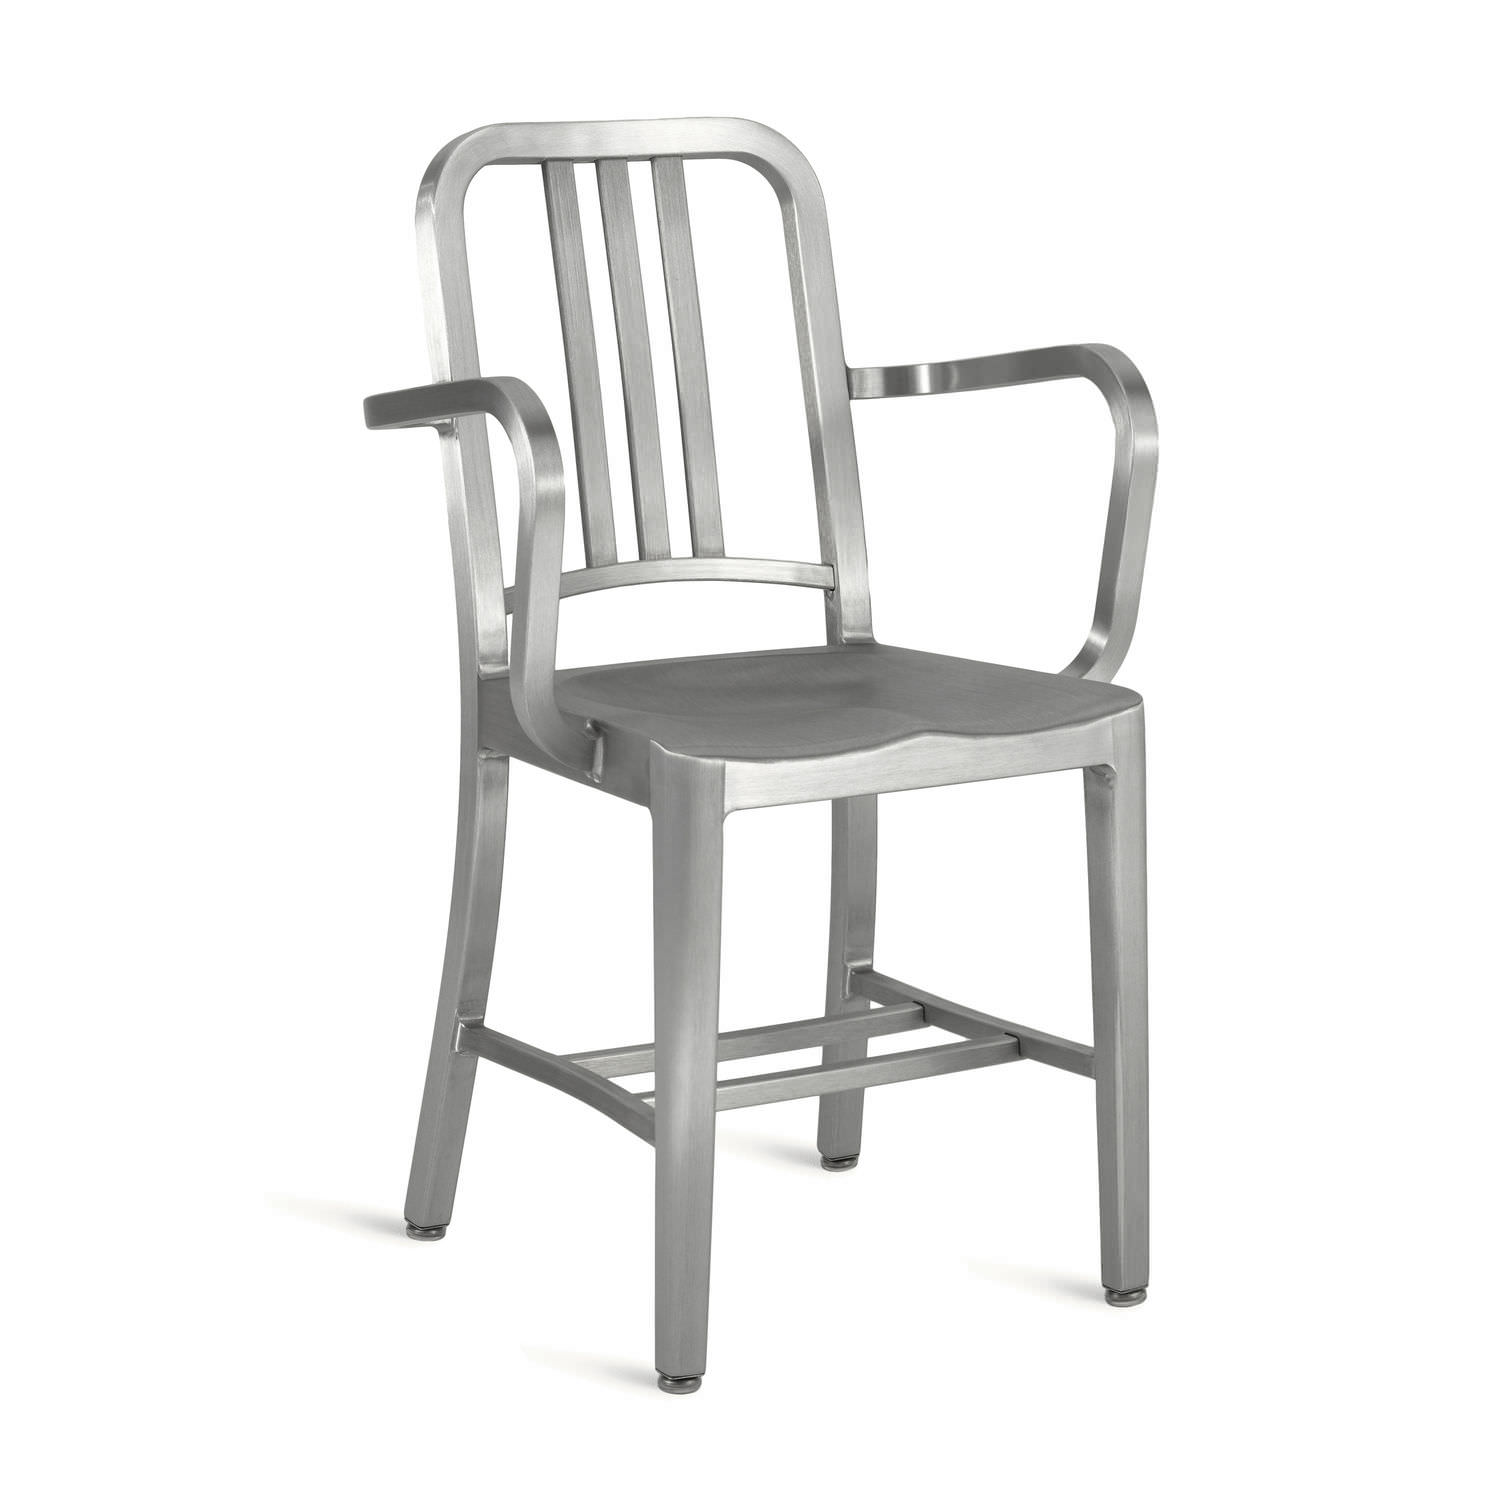 chair aluminum with armrests navy 1006a